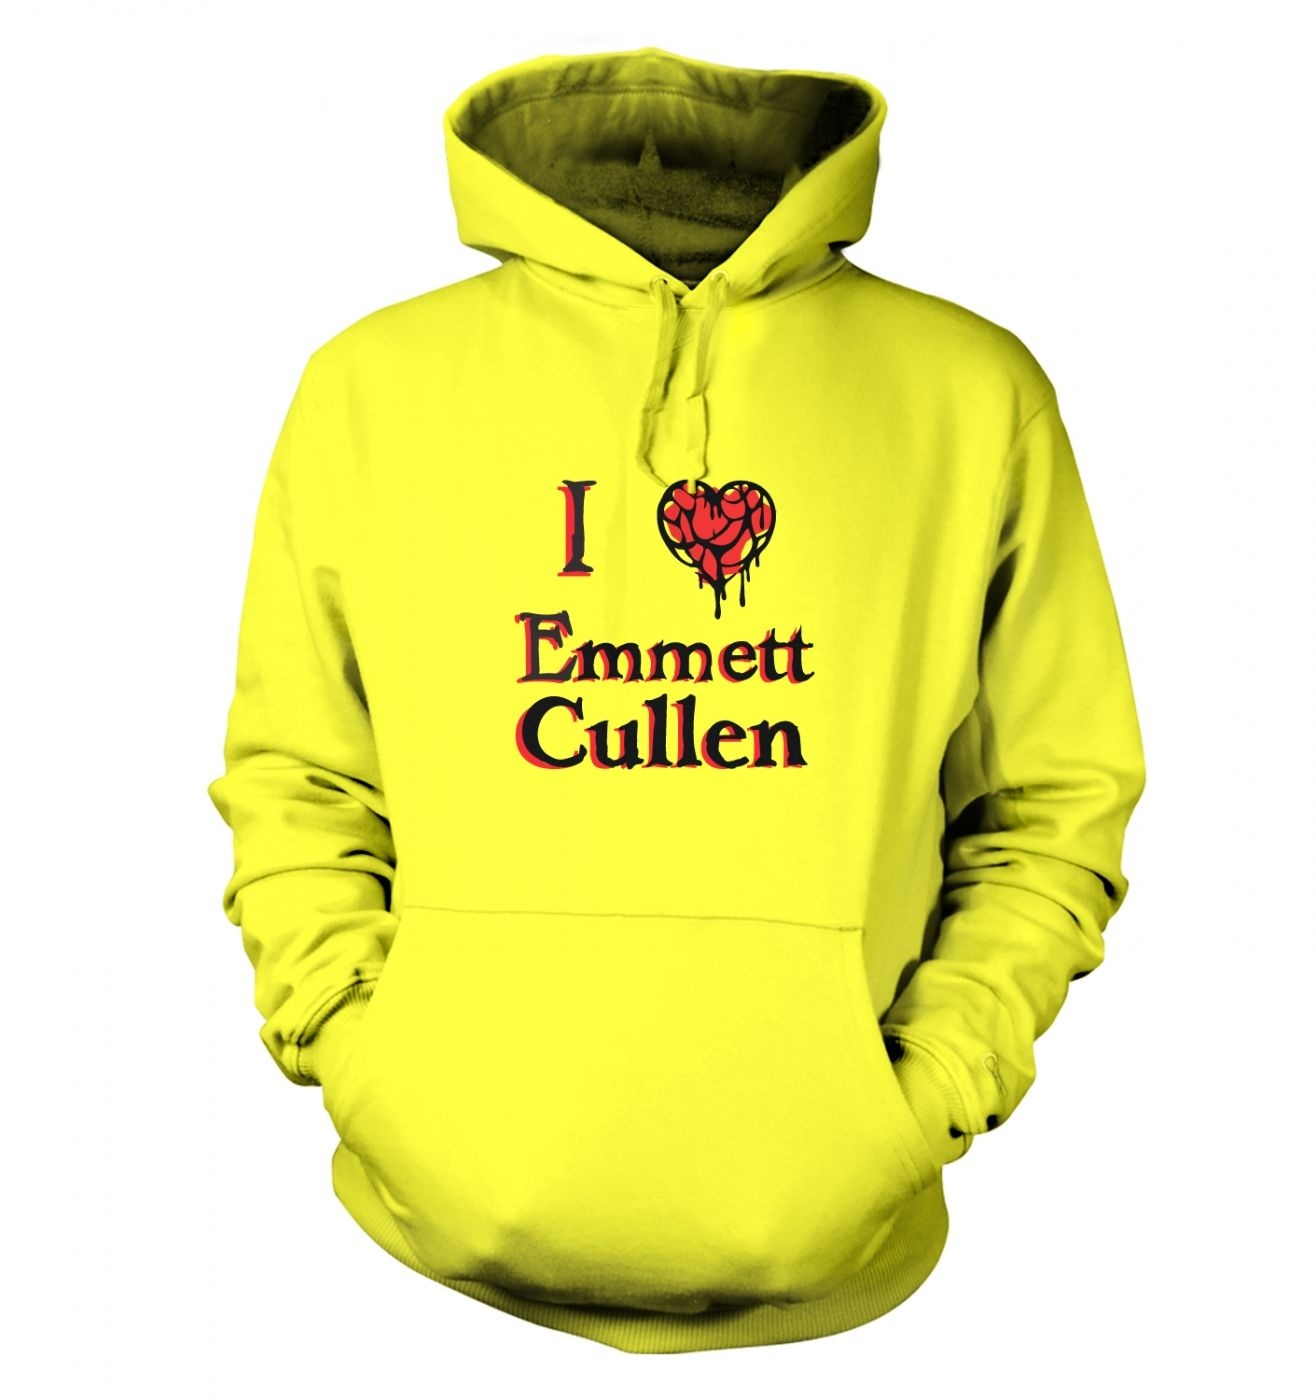 I heart Emmett Cullen hoodie - Inspired by Twilight